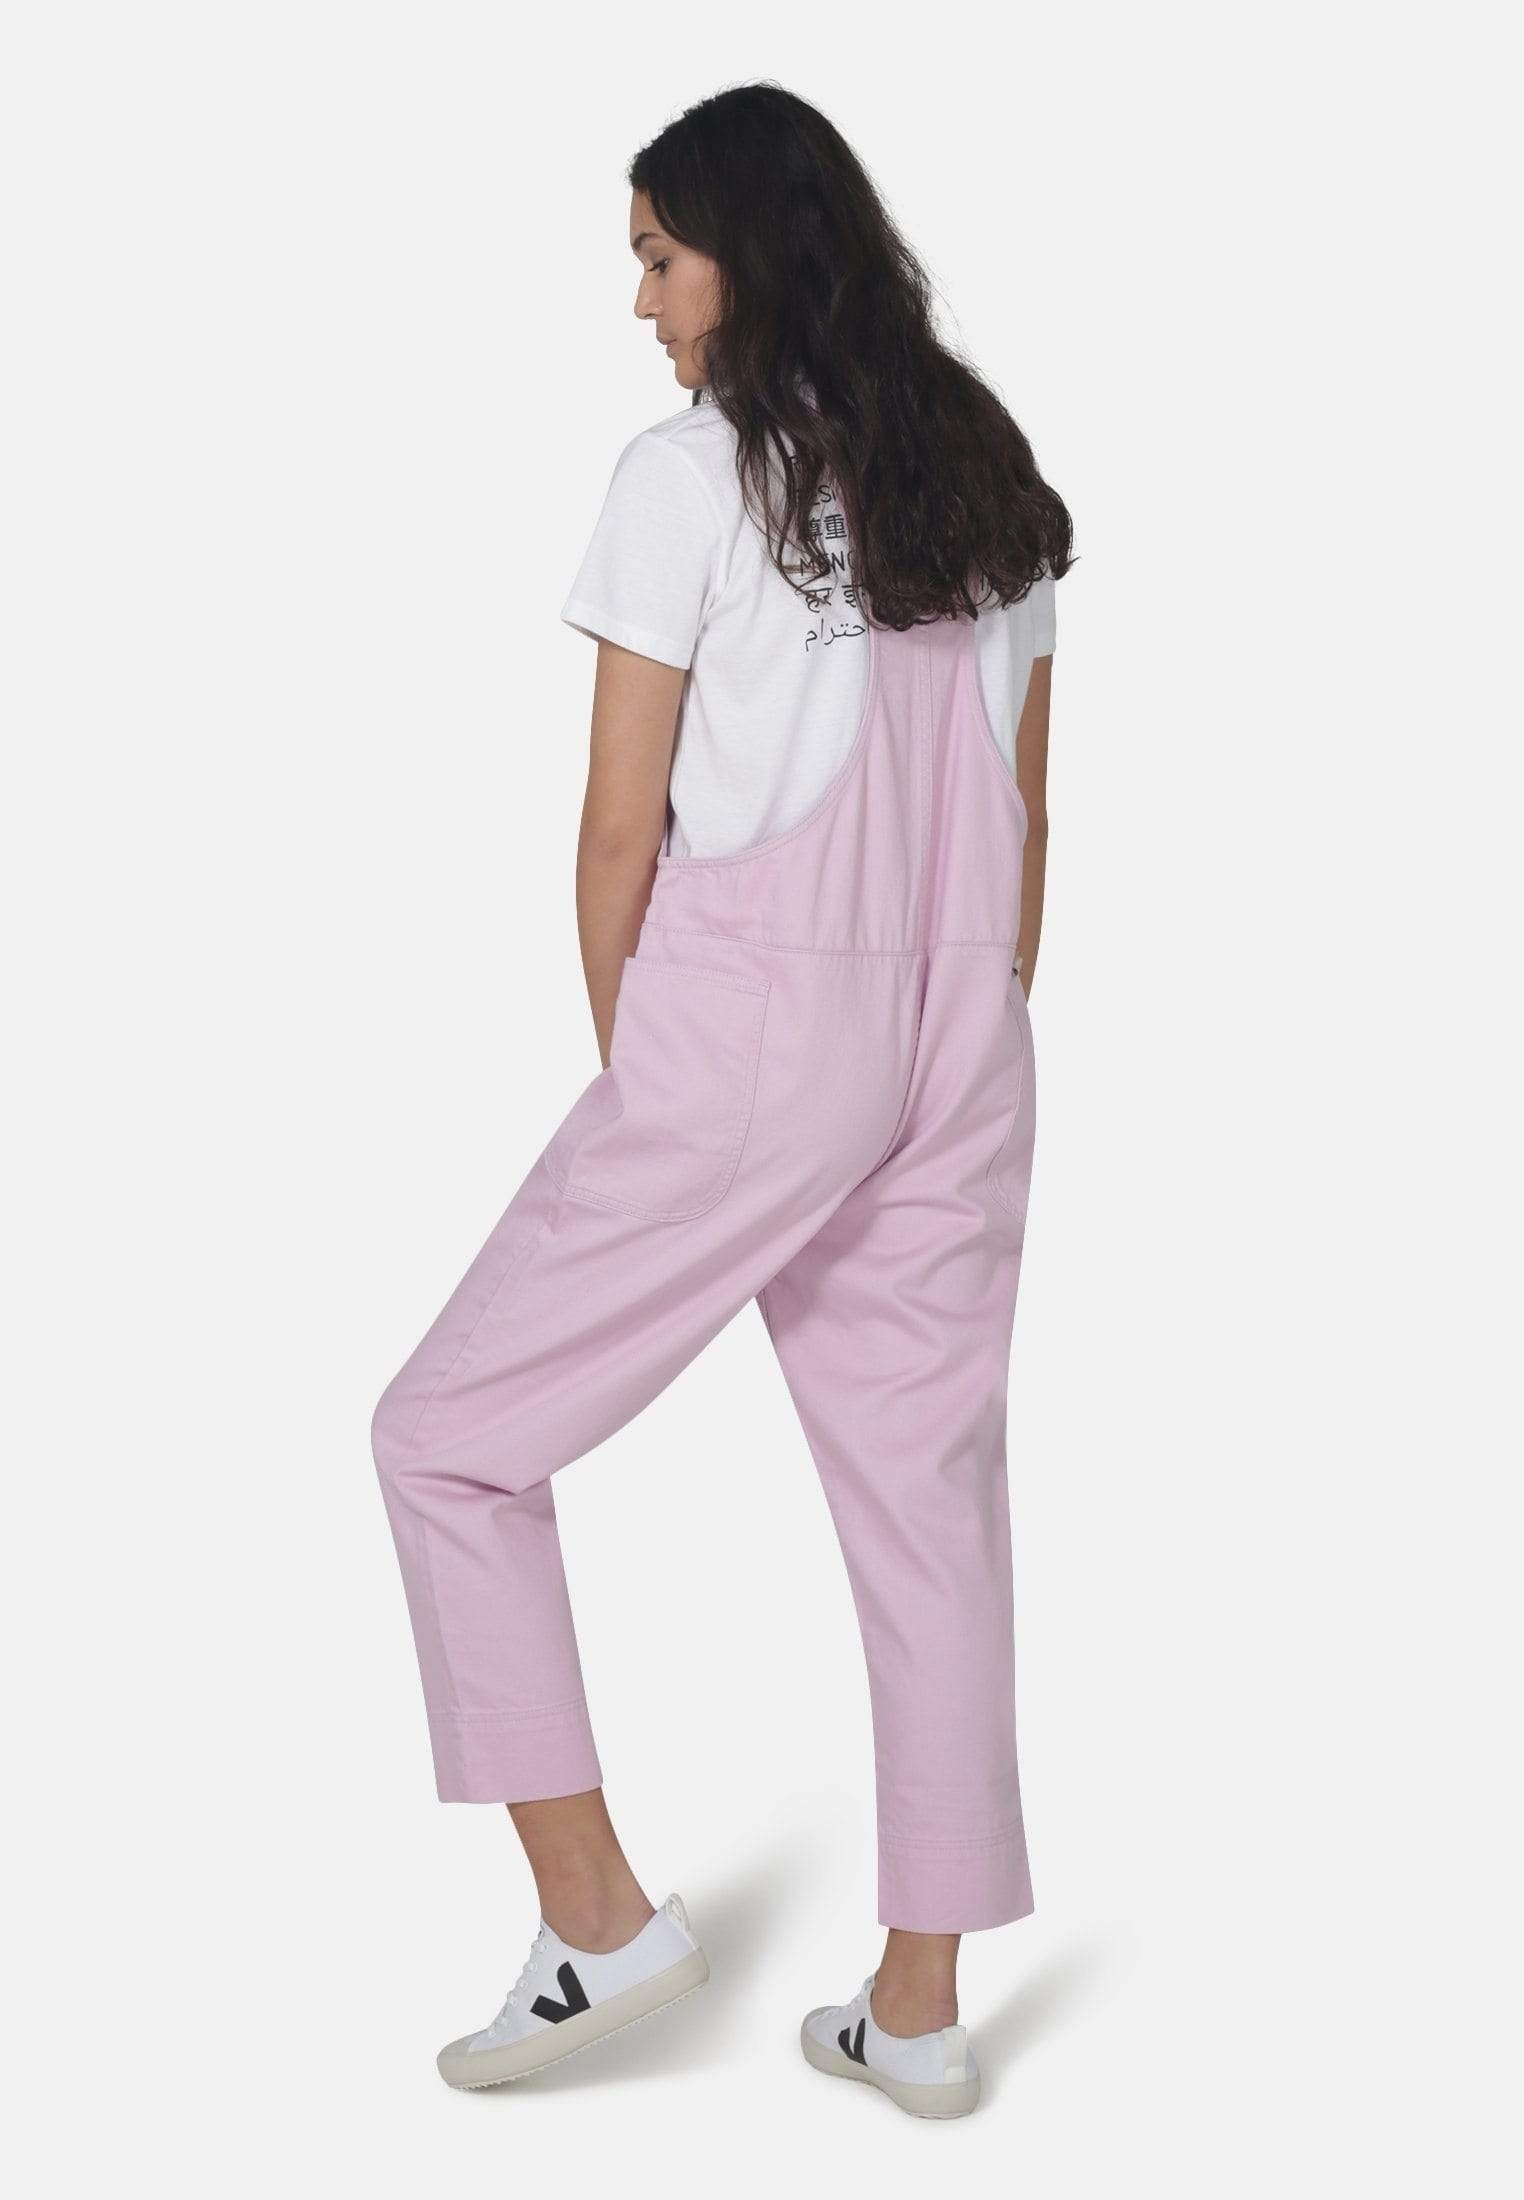 KOMODO pant Overall Dungarees. Organic Cotton. sustainable fashion ethical fashion